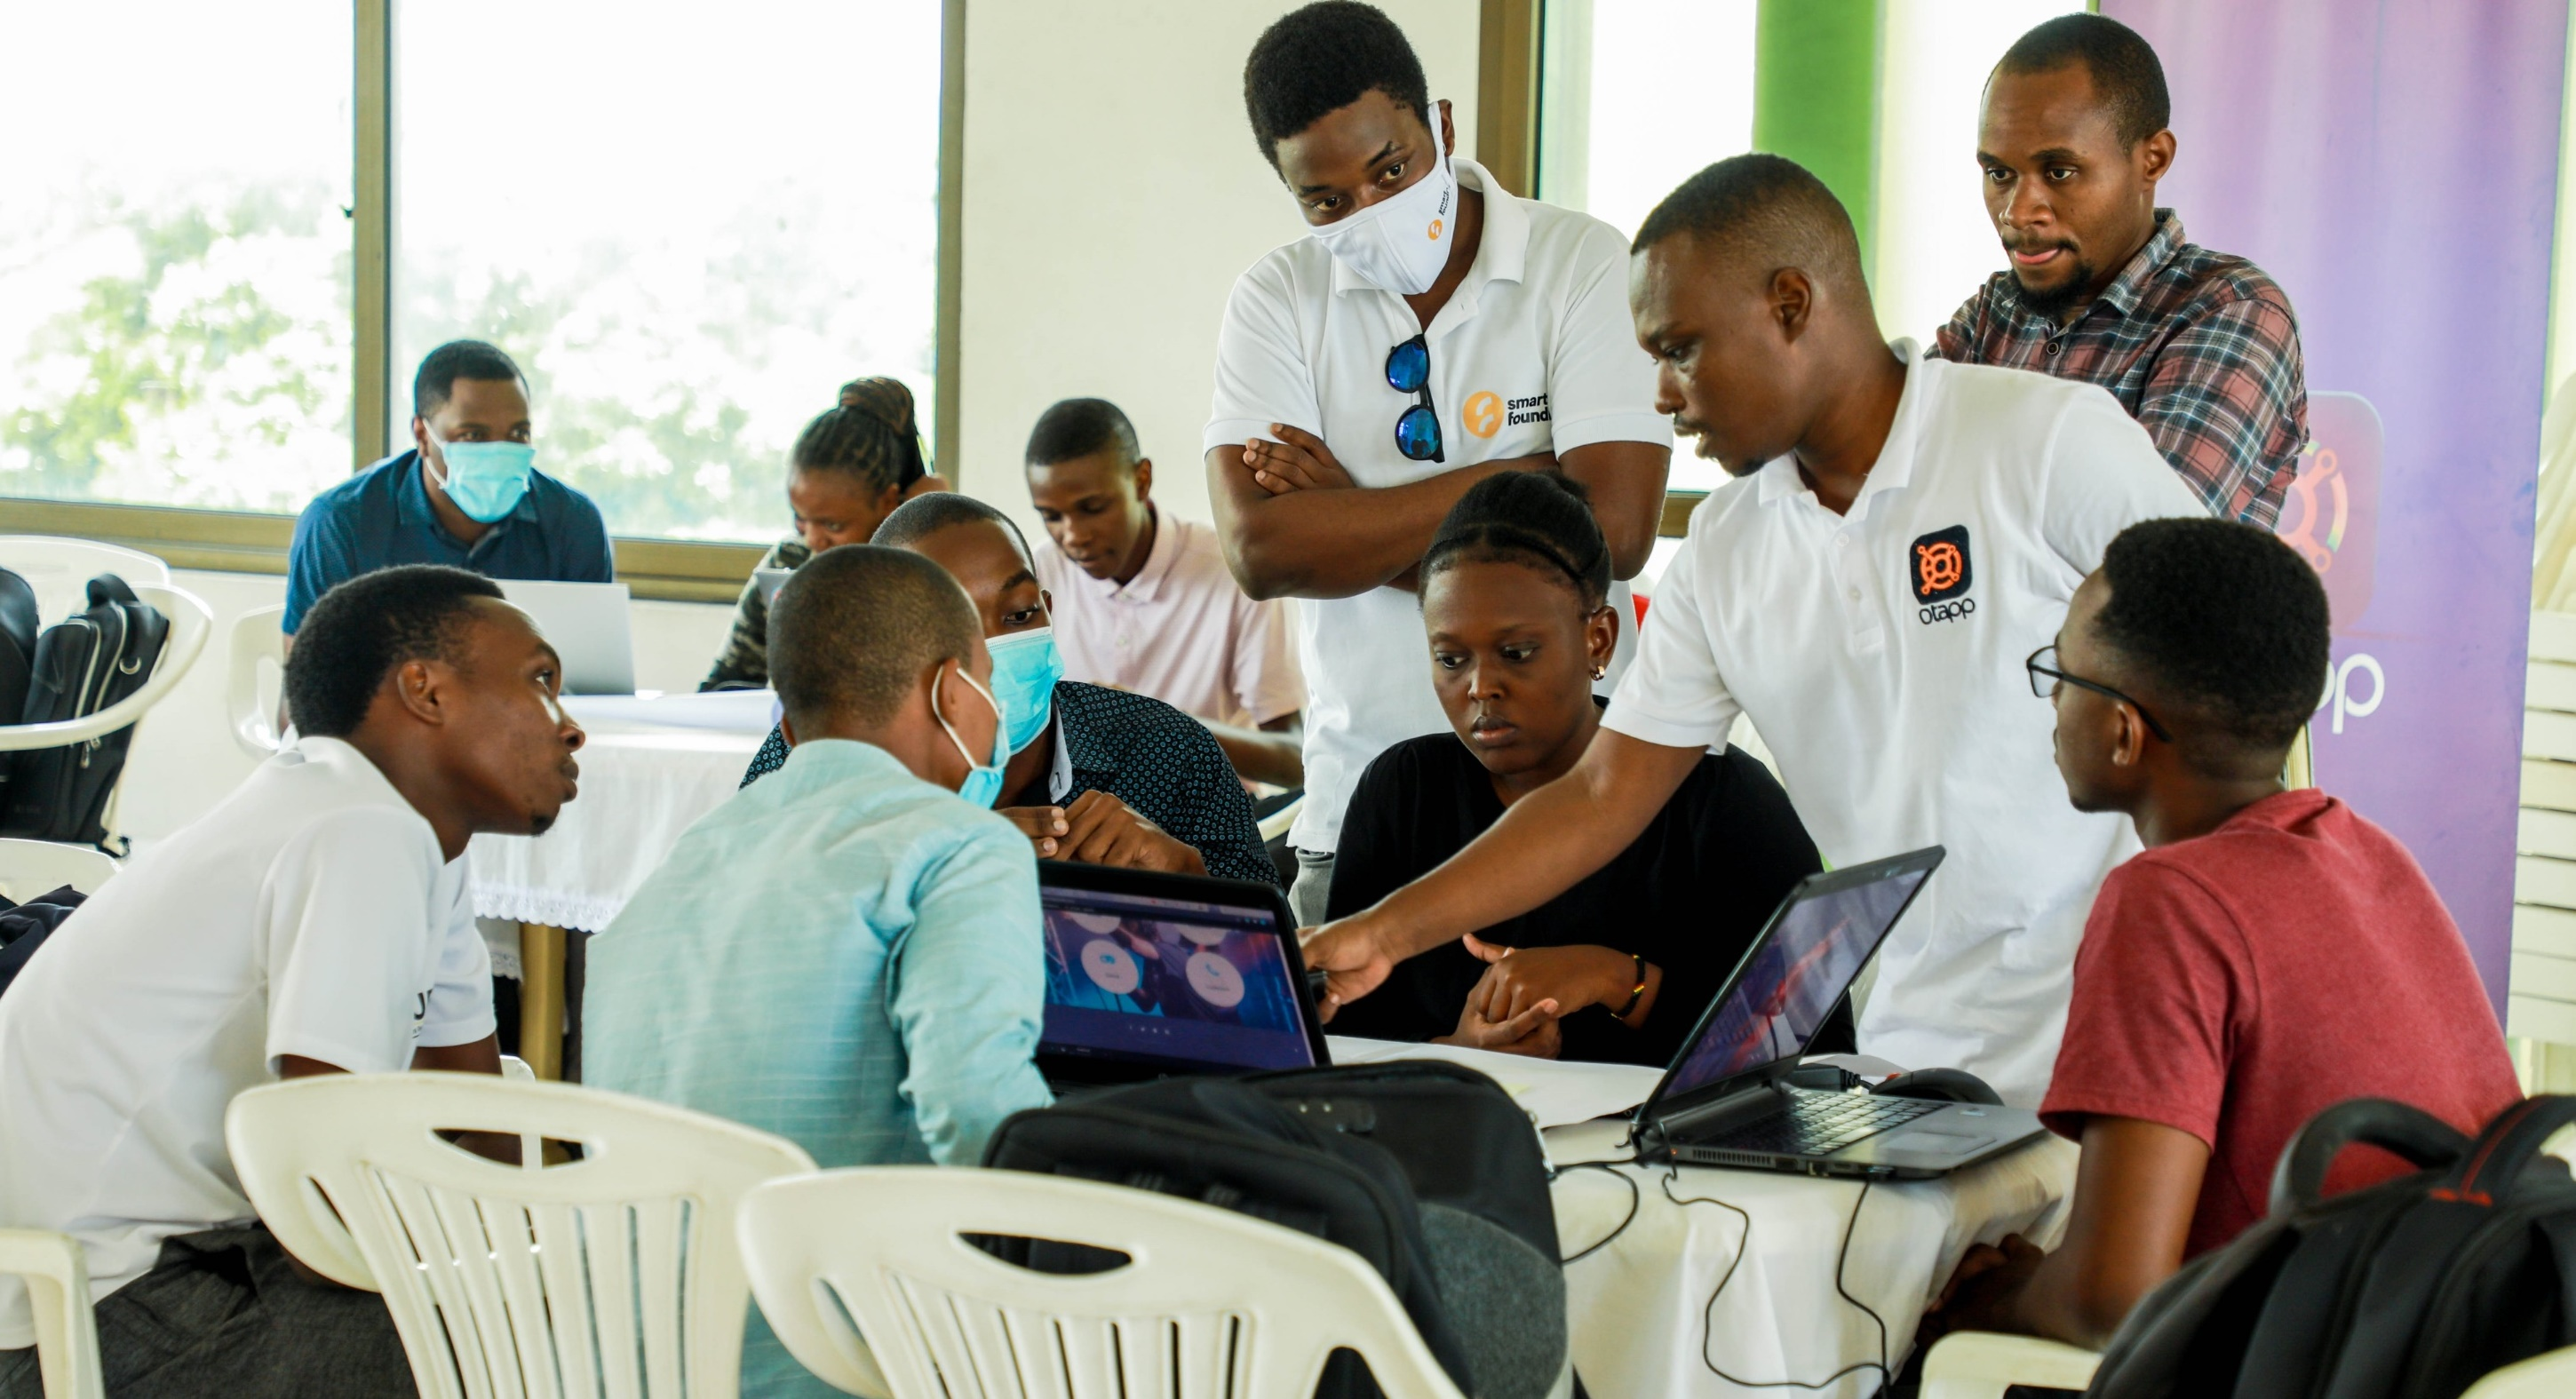 Digital firm brings together IT Students for Corporate Hackathon